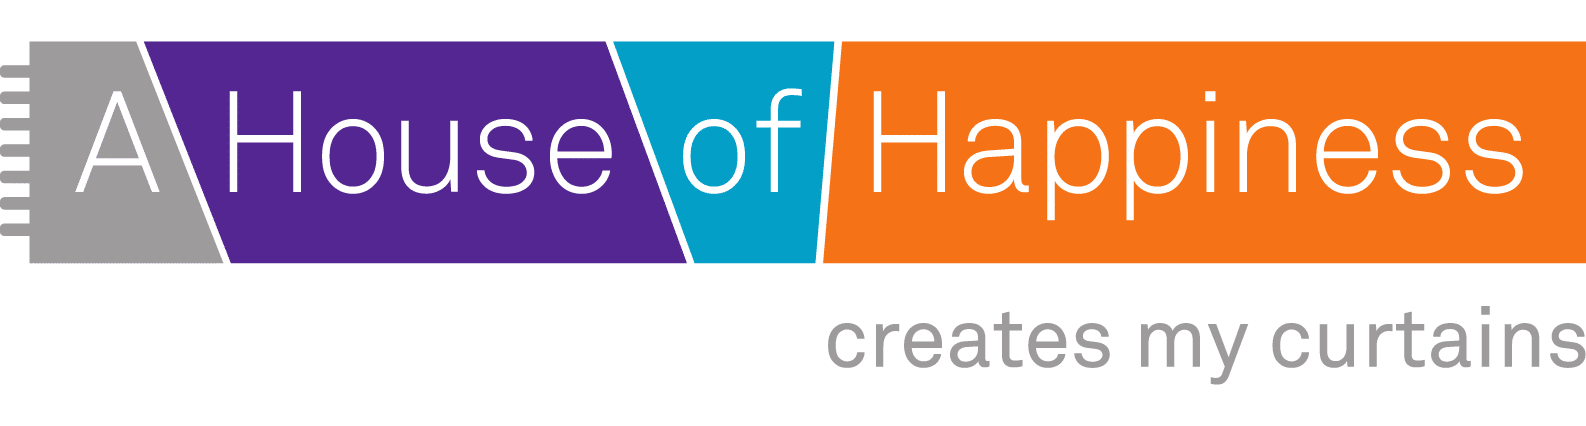 A House of Happiness Logo Lifestyle & Consumer Goods